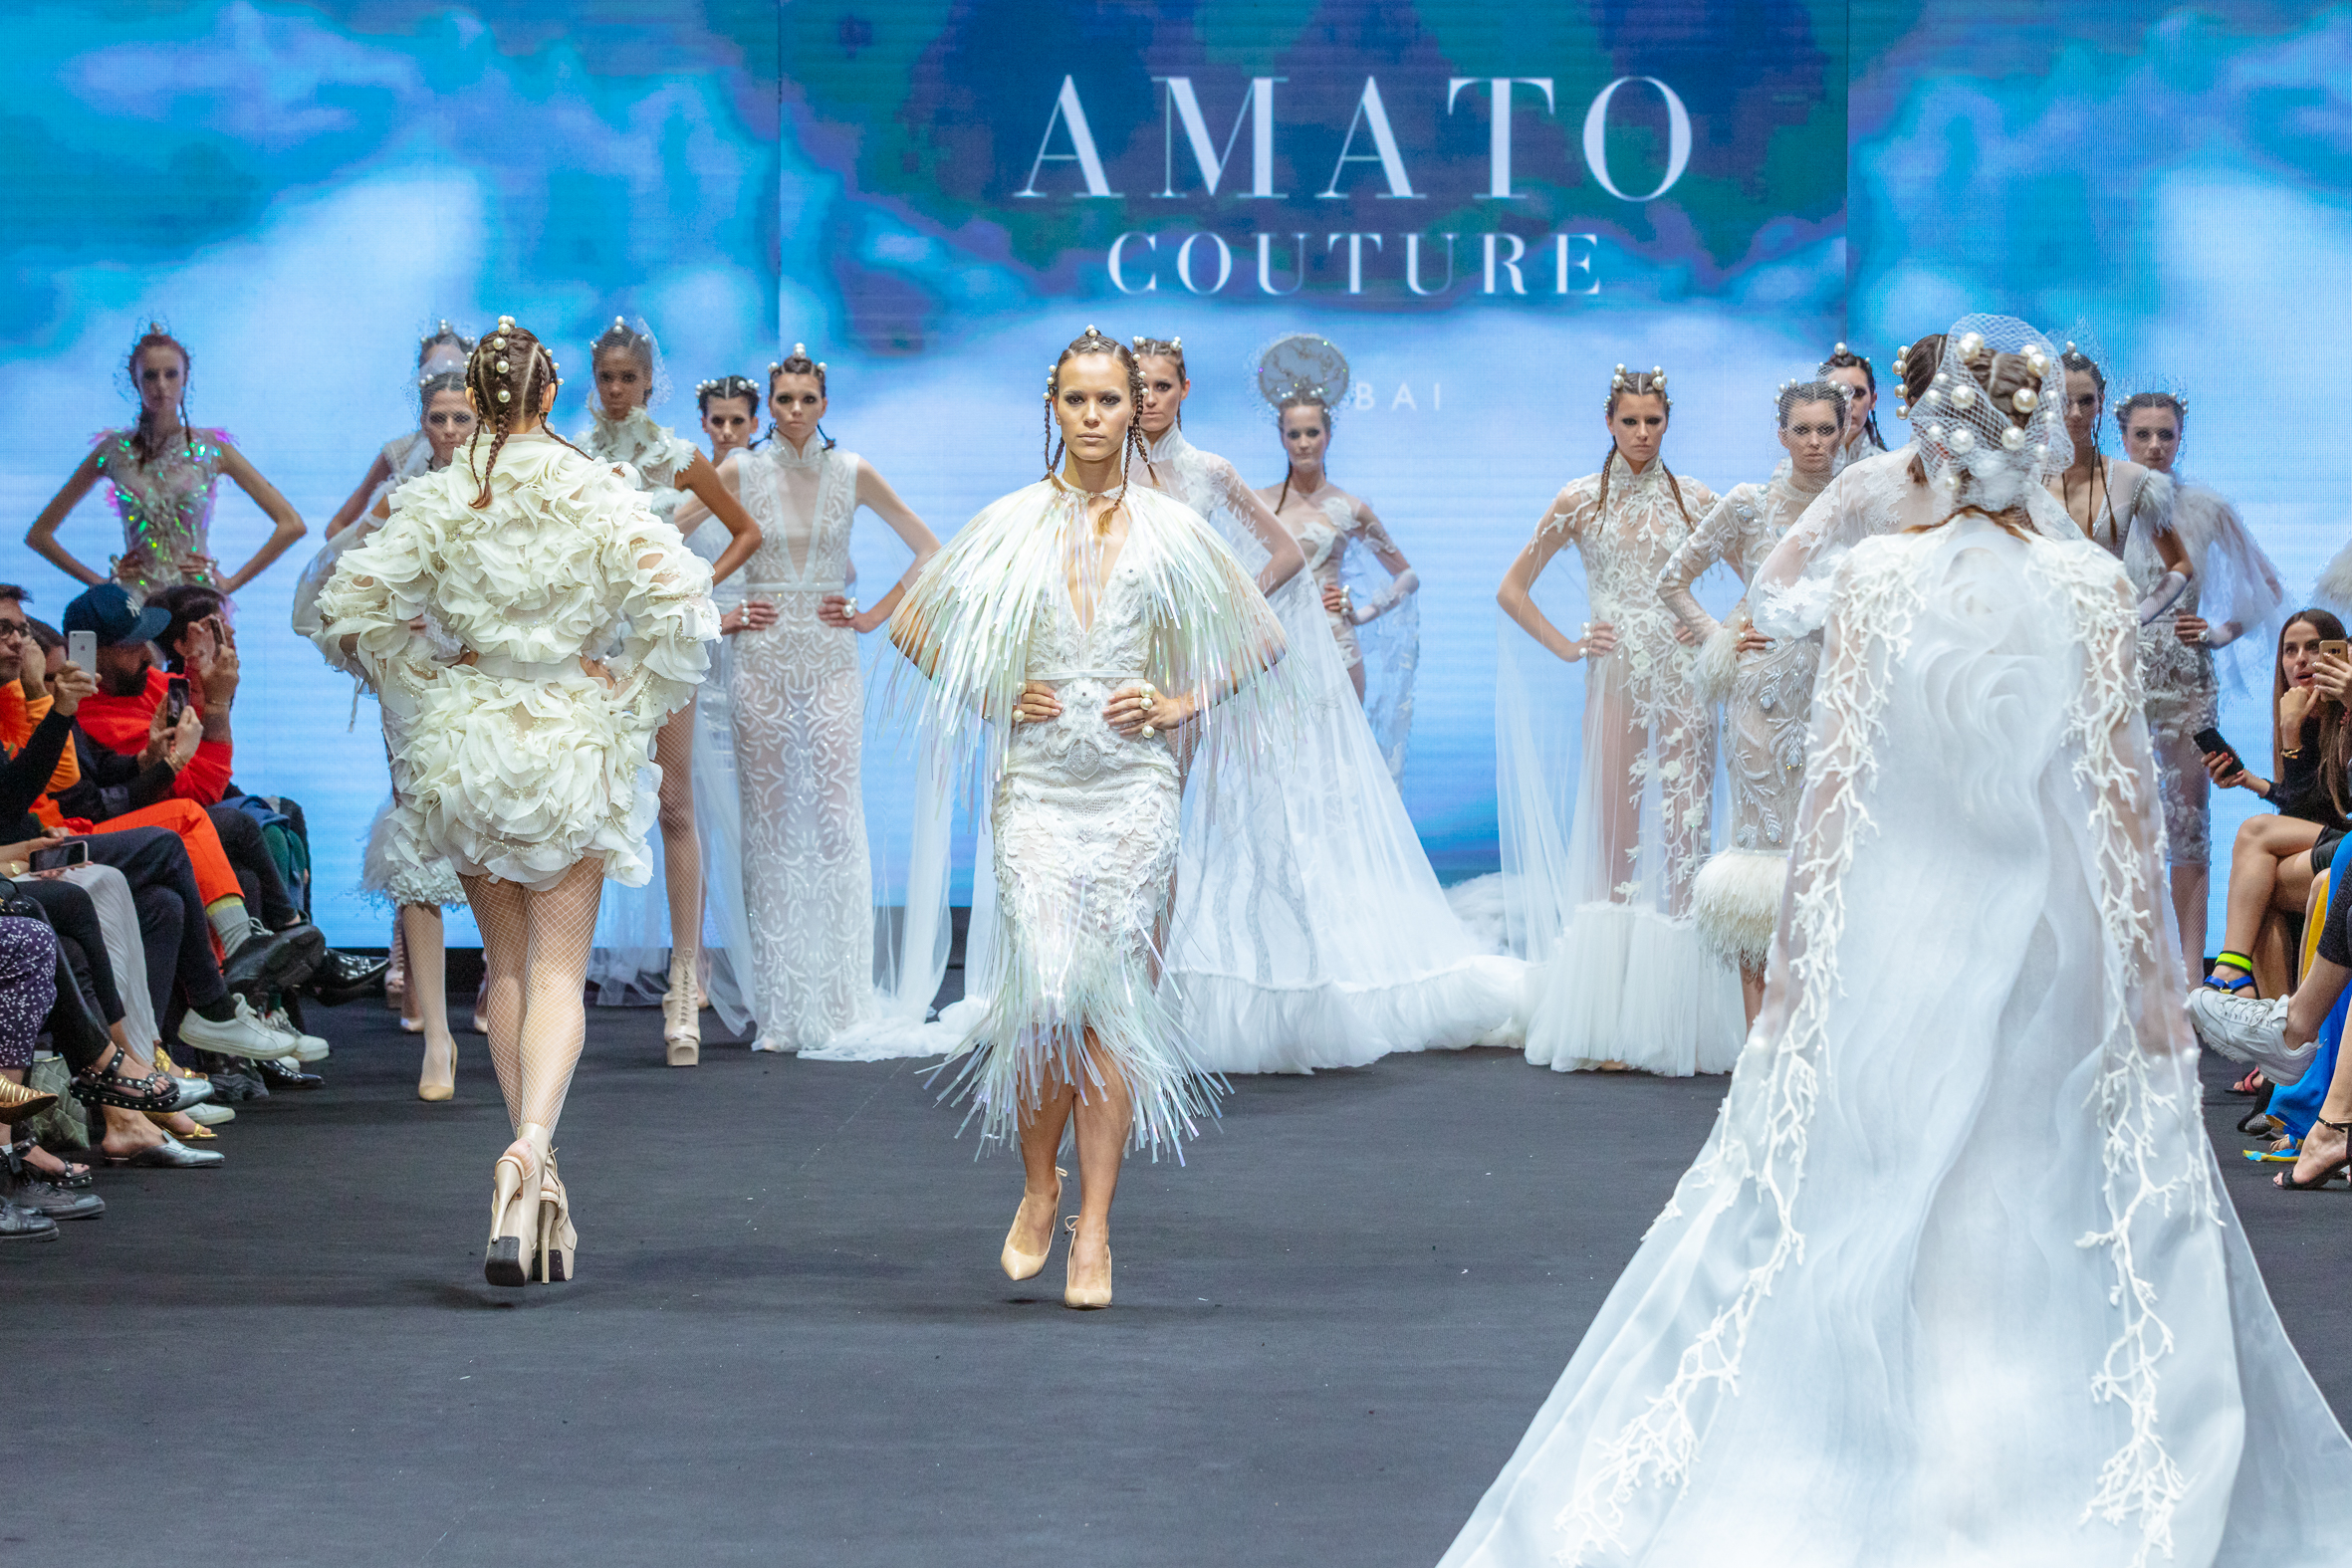 Amato couture de Dubai